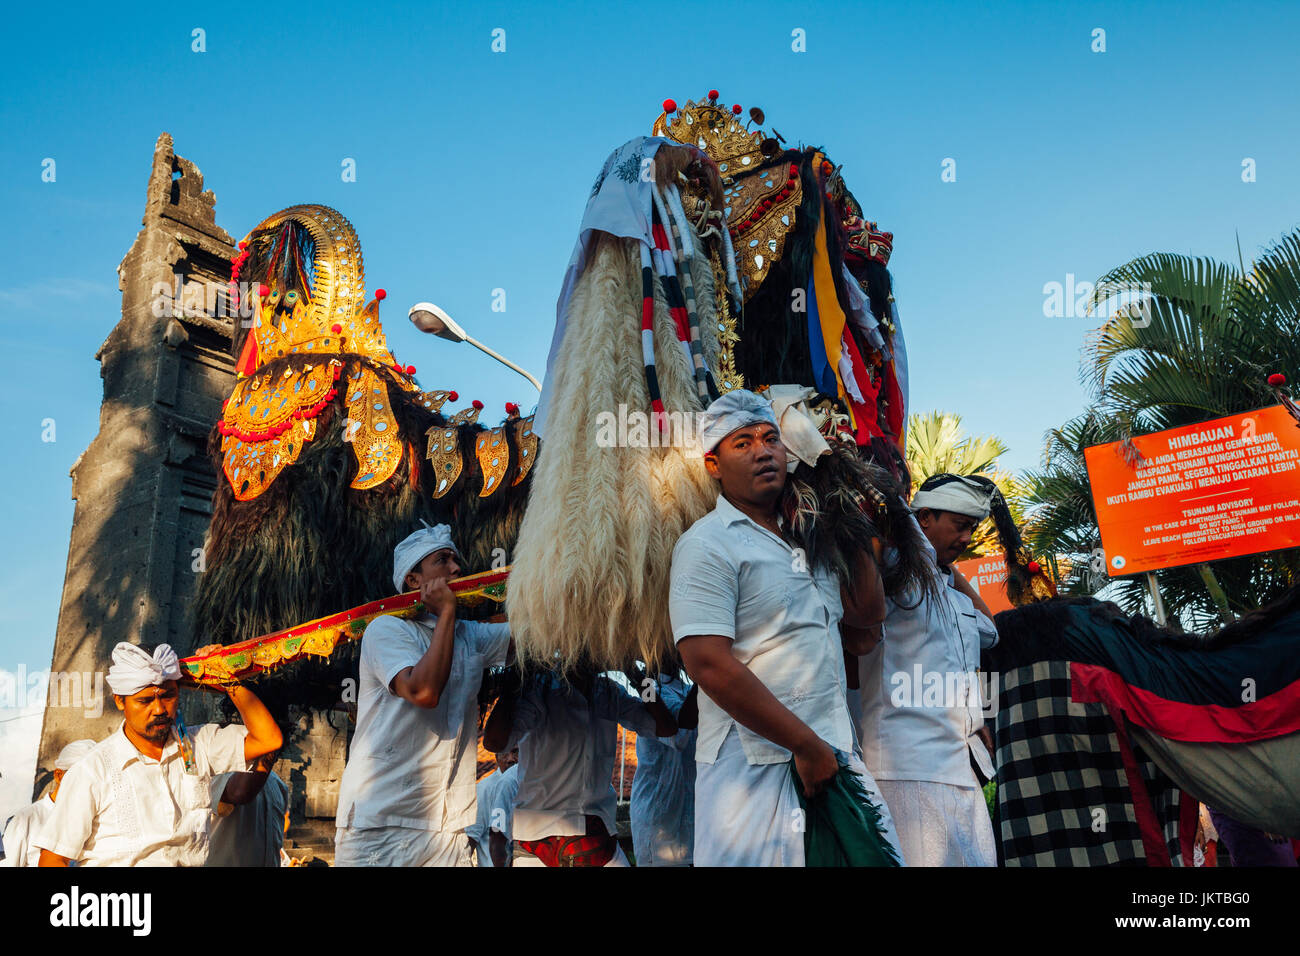 Bali, Indonesia - March 07, 2016: Balinese people in traditional clothes carry jempana or wooden litter at the procession Stock Photo